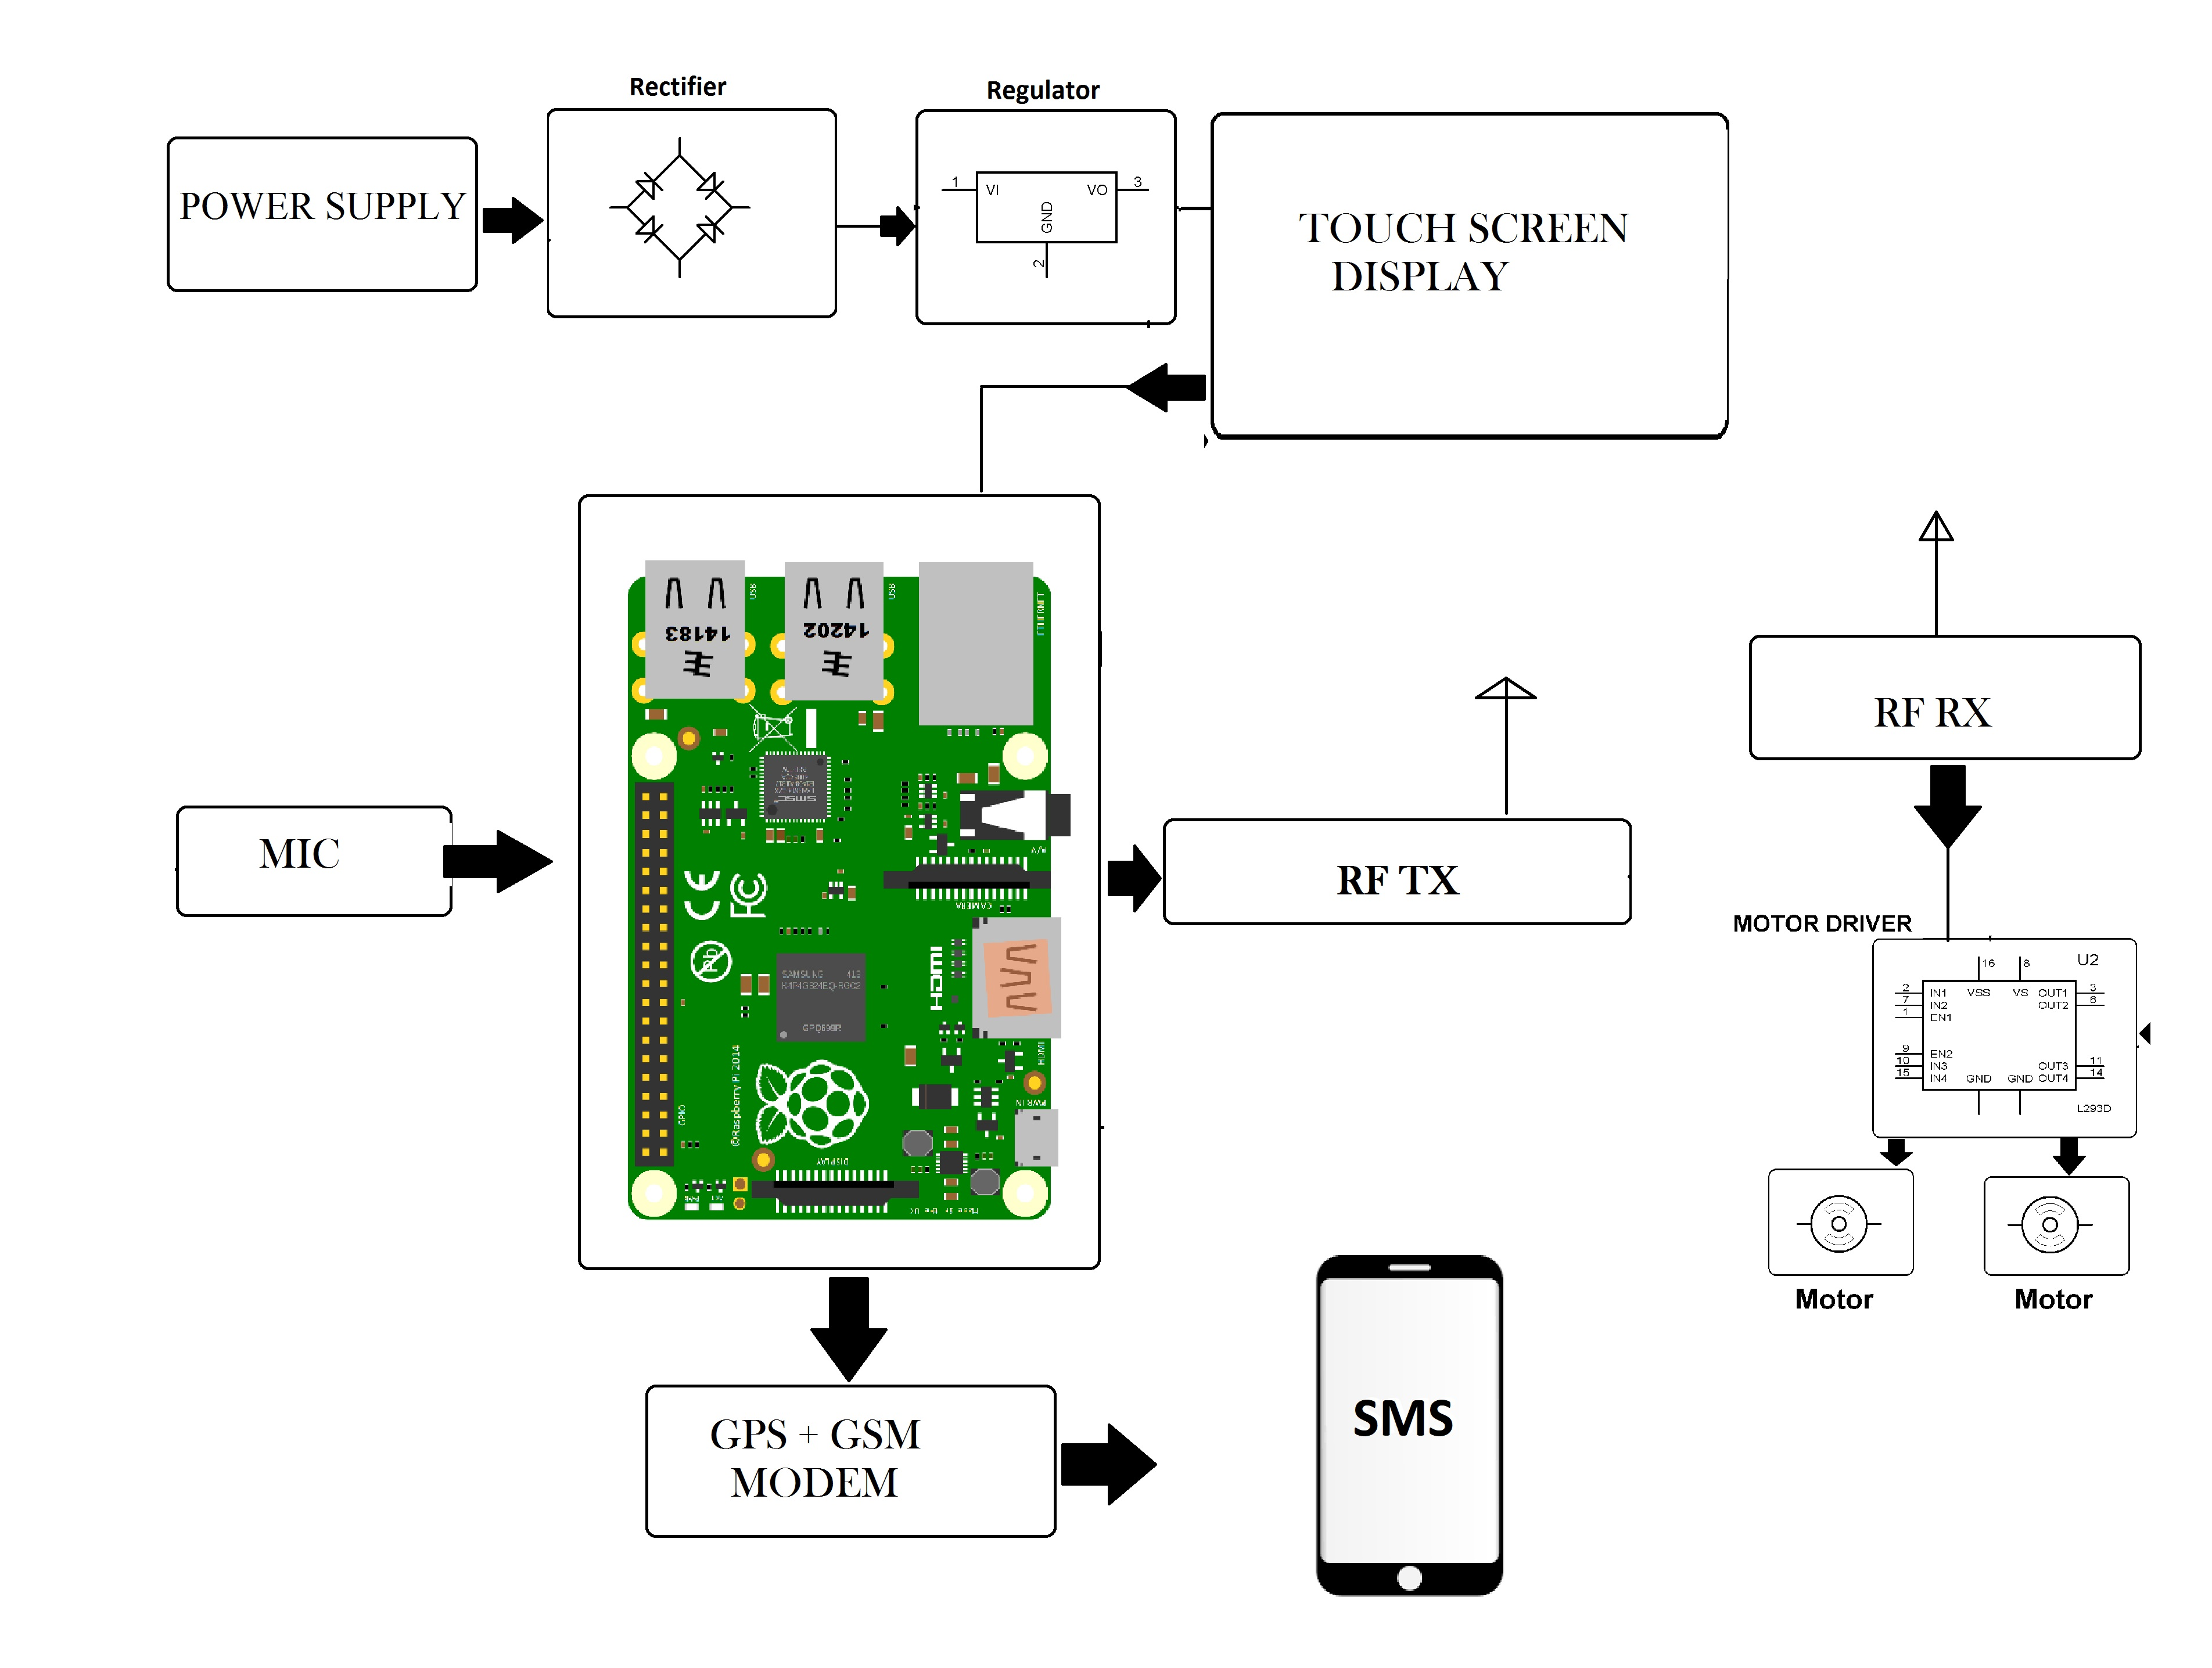 pi controller block diagram 1992 ford f150 parts smart stand up wheelchair using android touch screen and